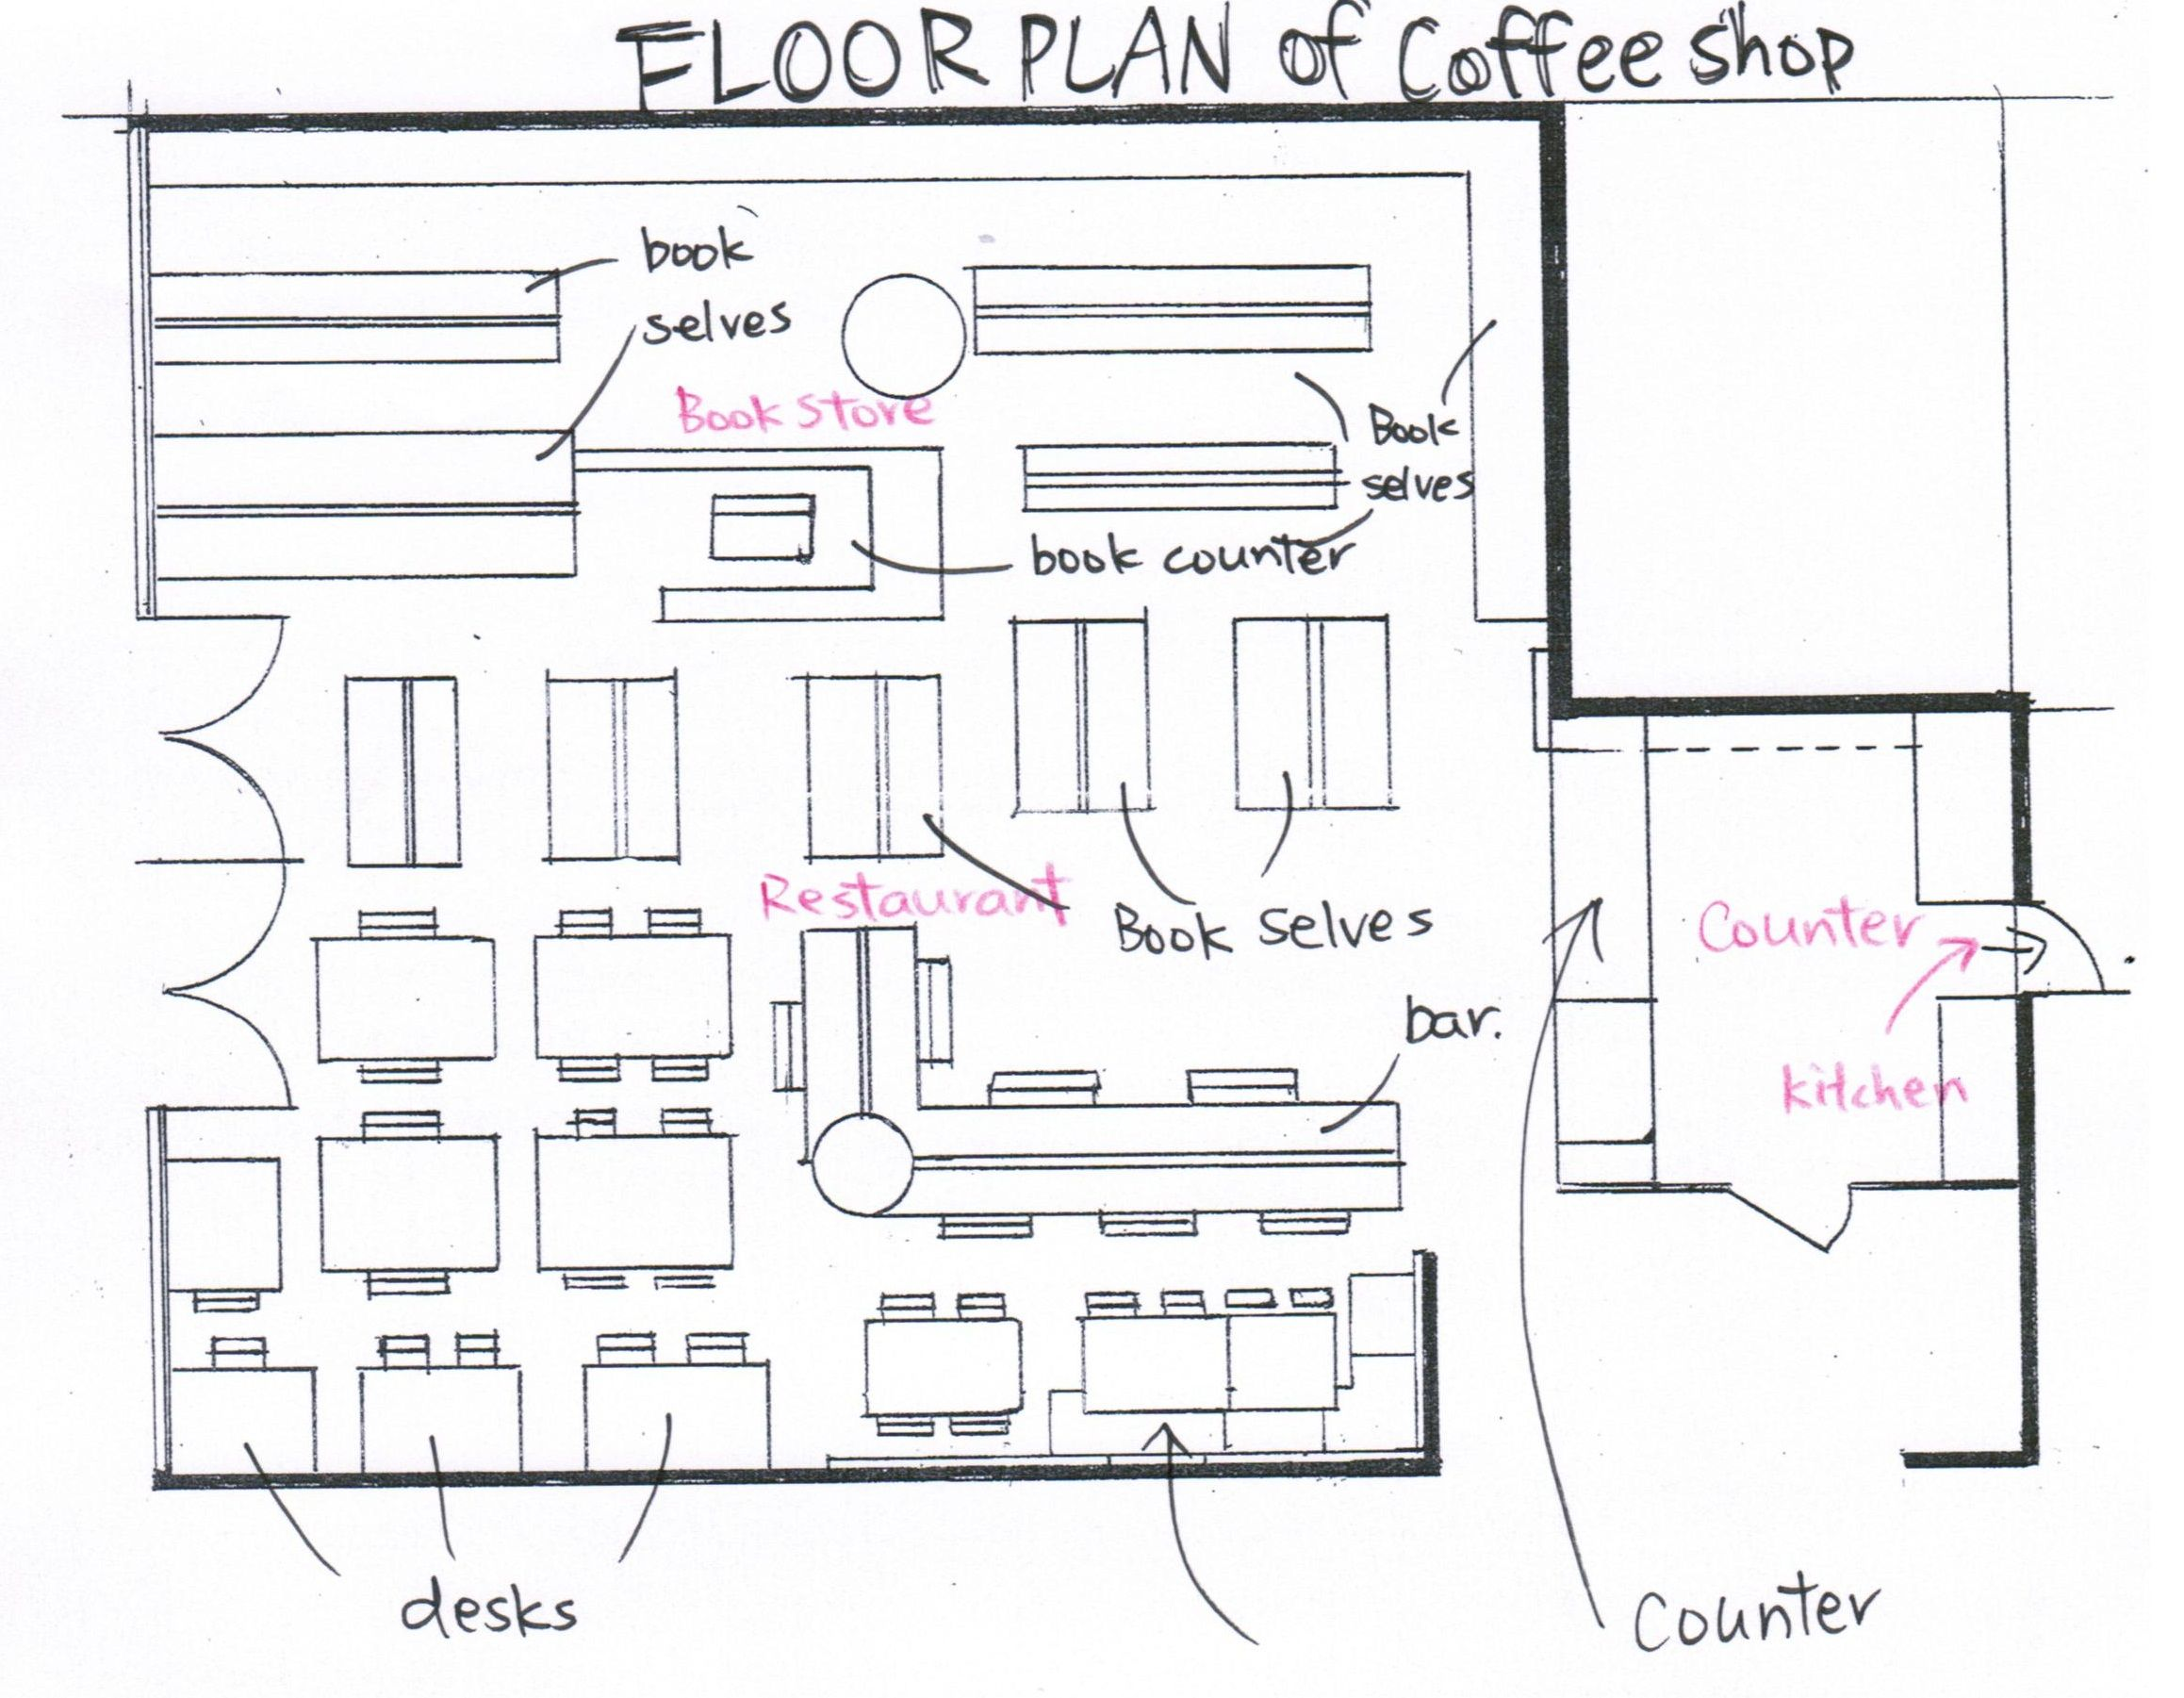 Floor Plan Coffee Shop Coffee Shop Interior Design Coffee Shop Design Coffee Shop